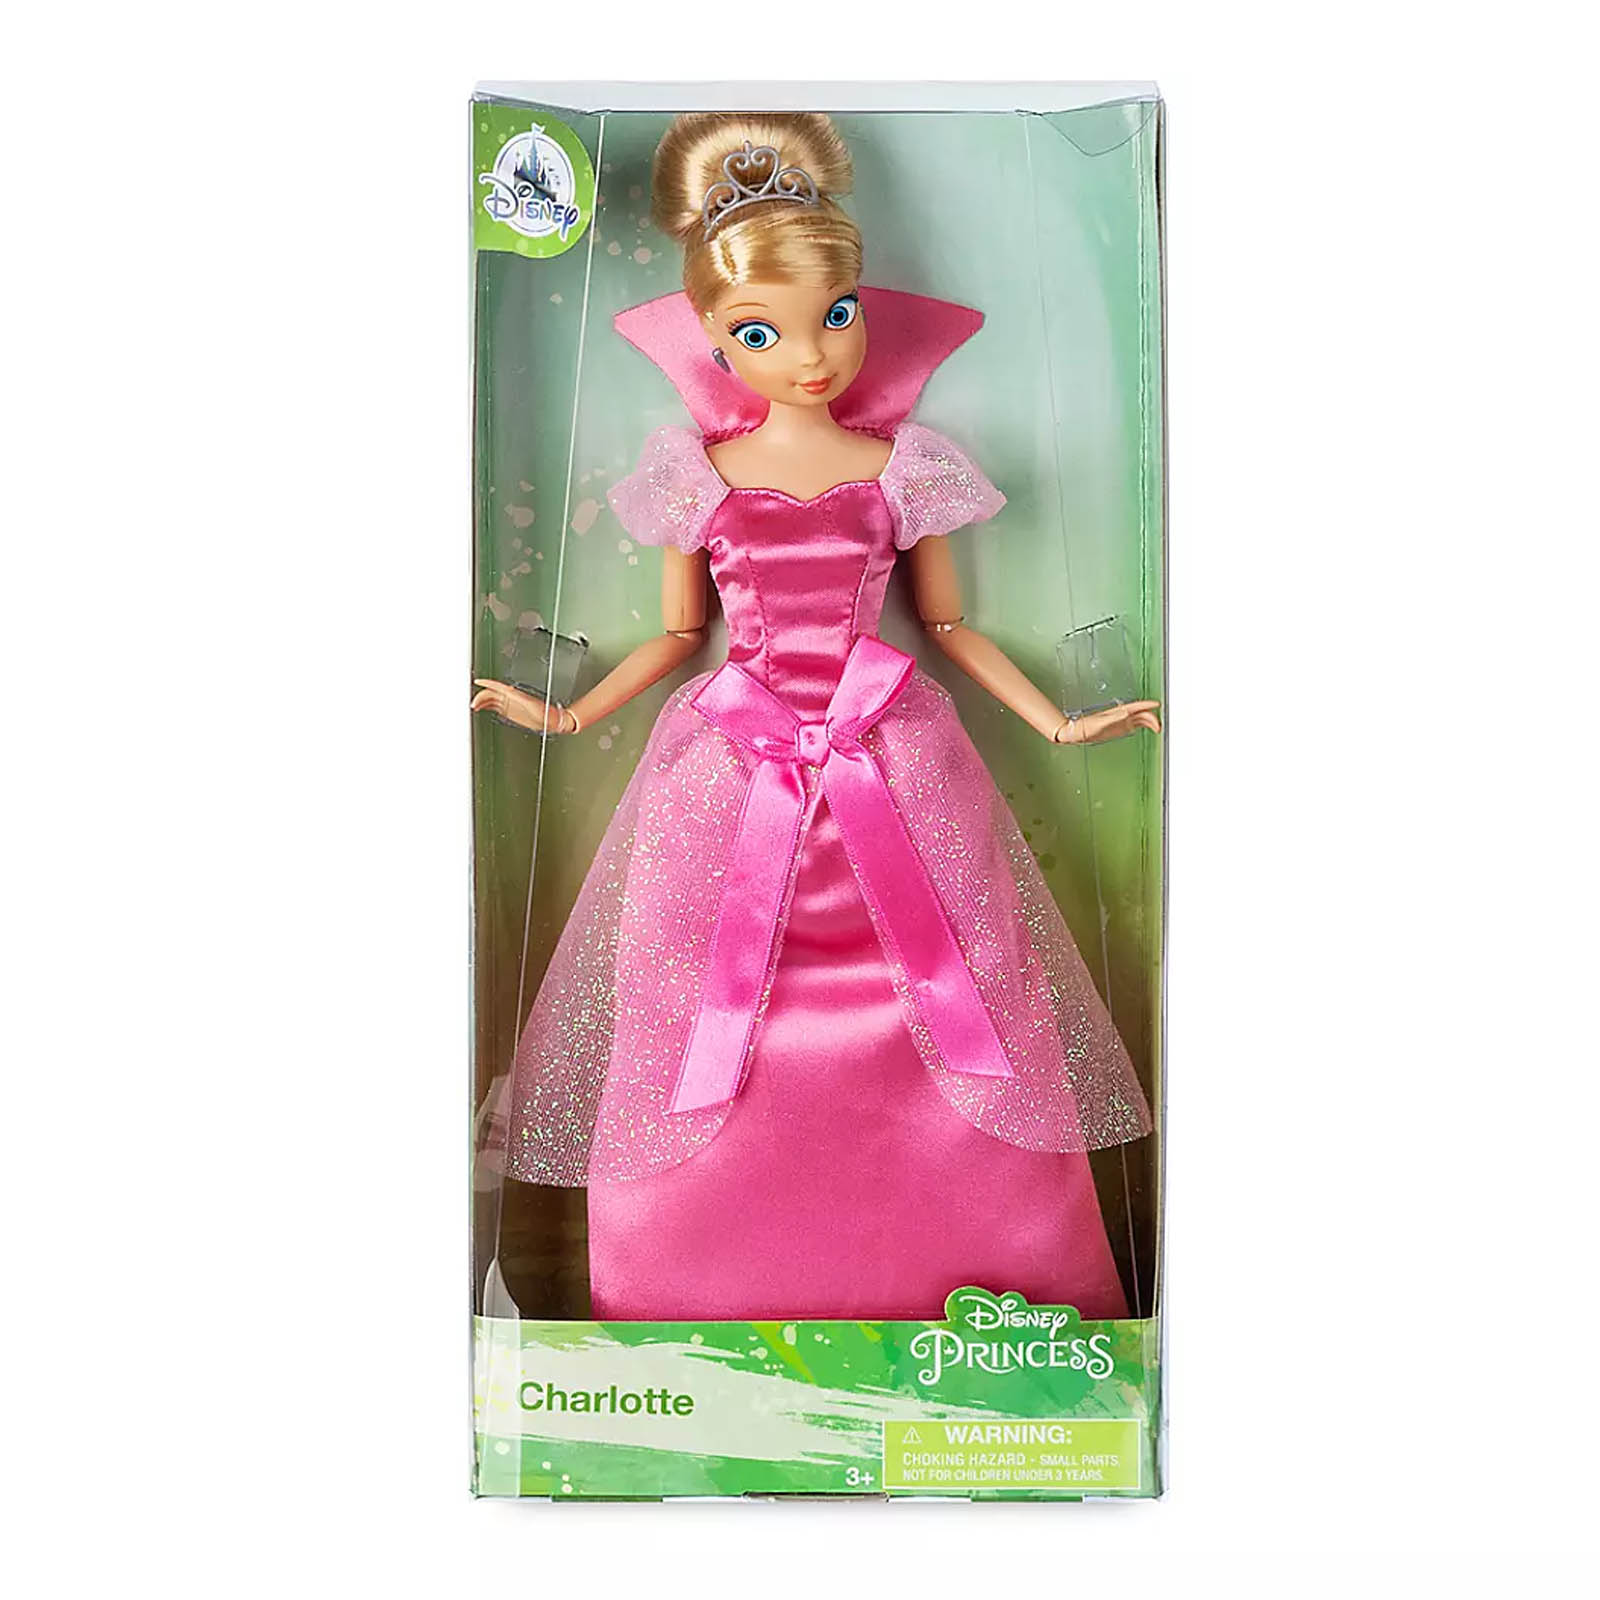 Disney Princess and the Frog Classic Charlotte Doll Disney Store